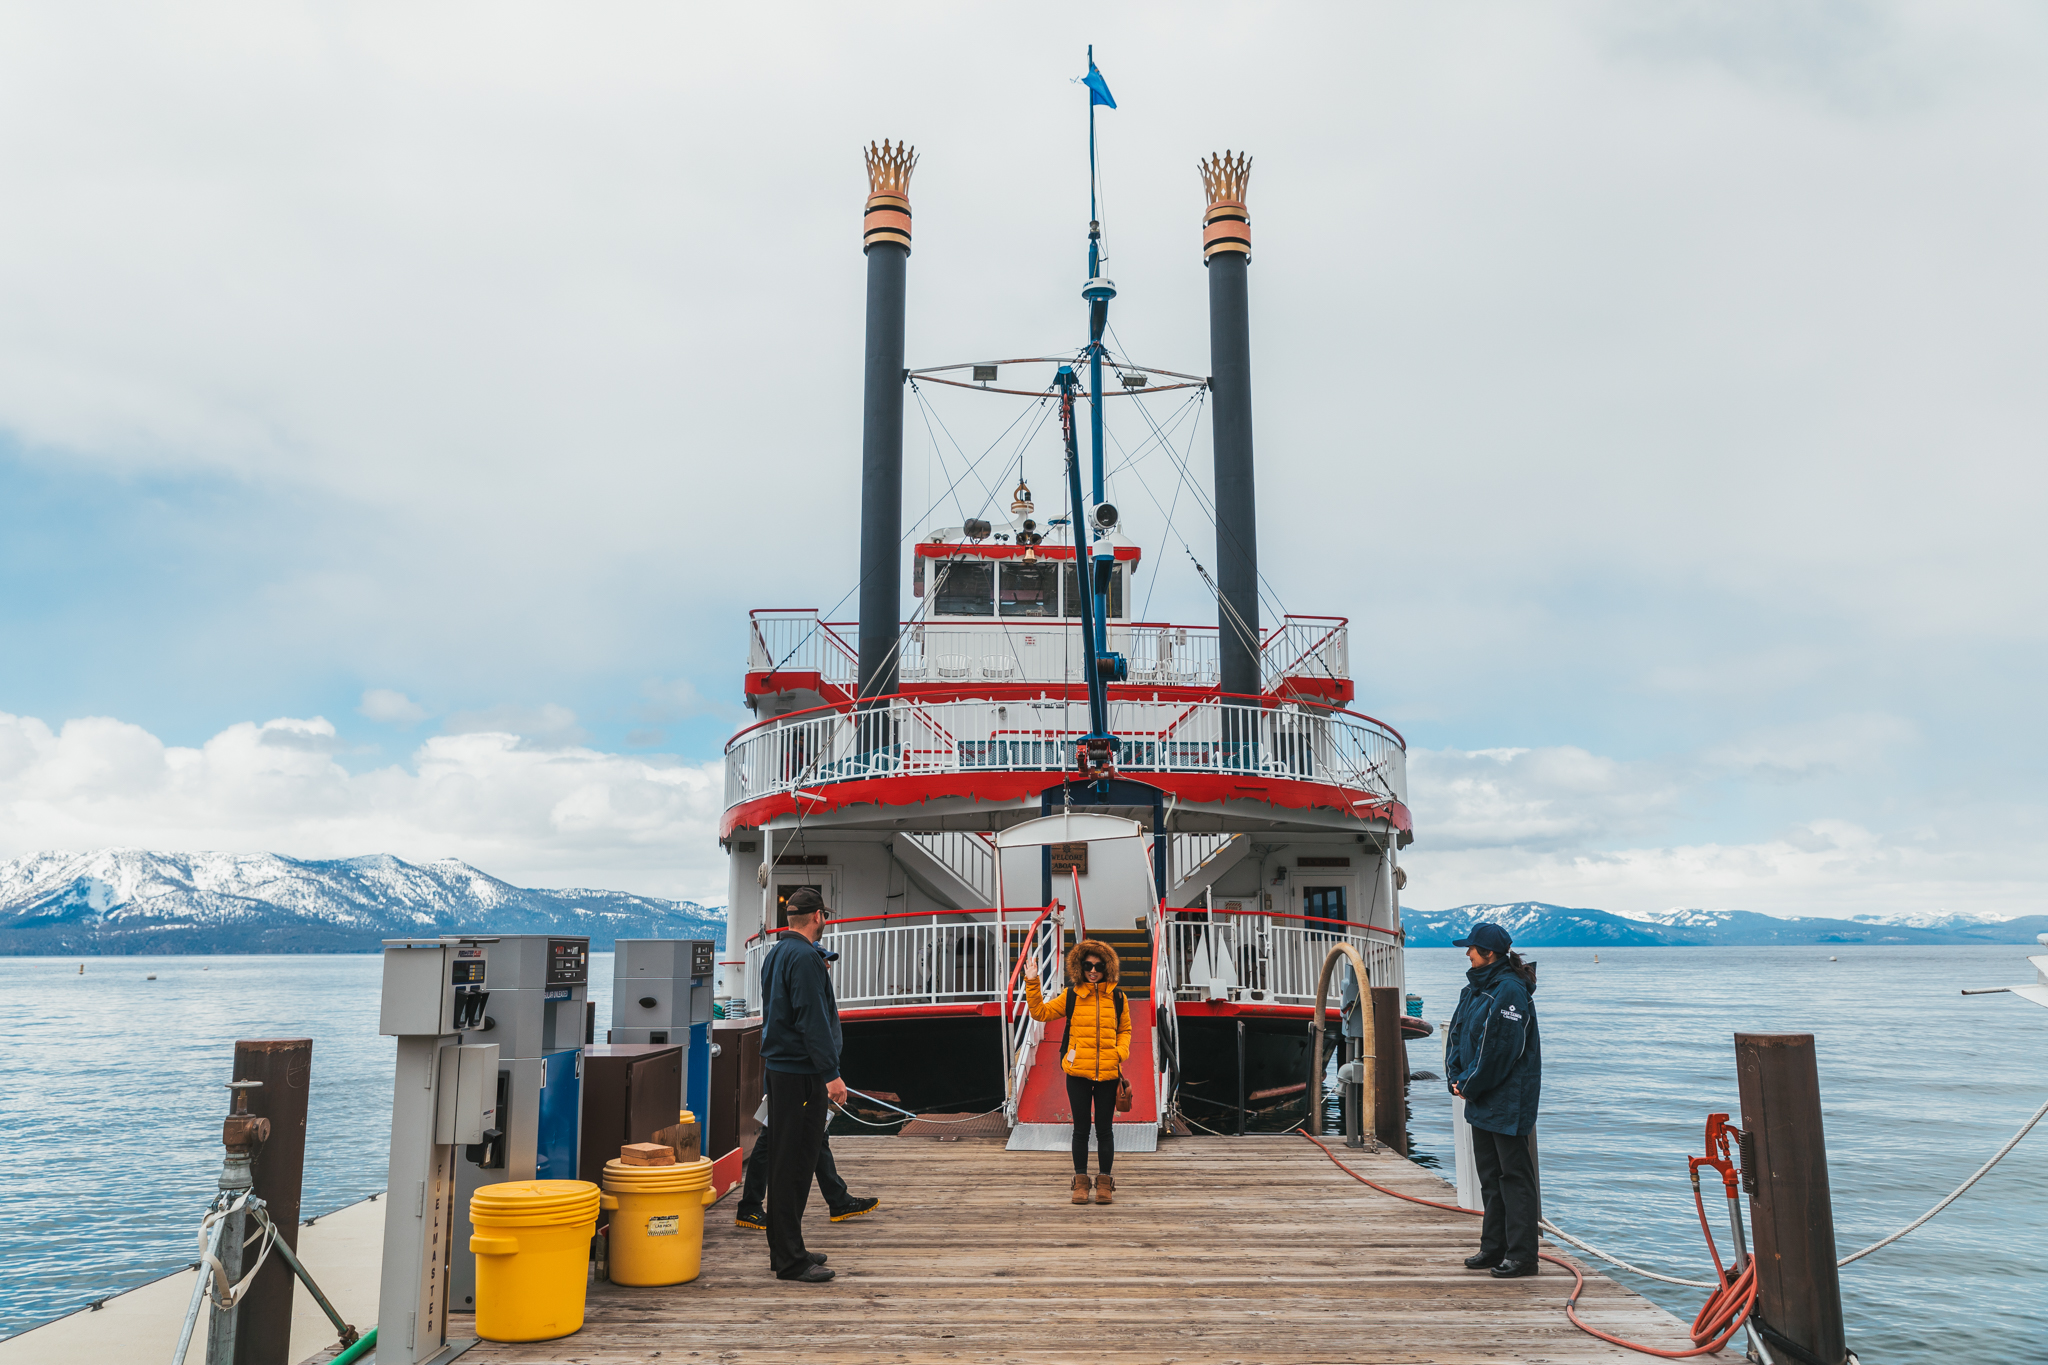 Scenic cruising on Lake Tahoe aboard the M.S. Dixie II // A Quick Guide to North Lake Tahoe & Reno